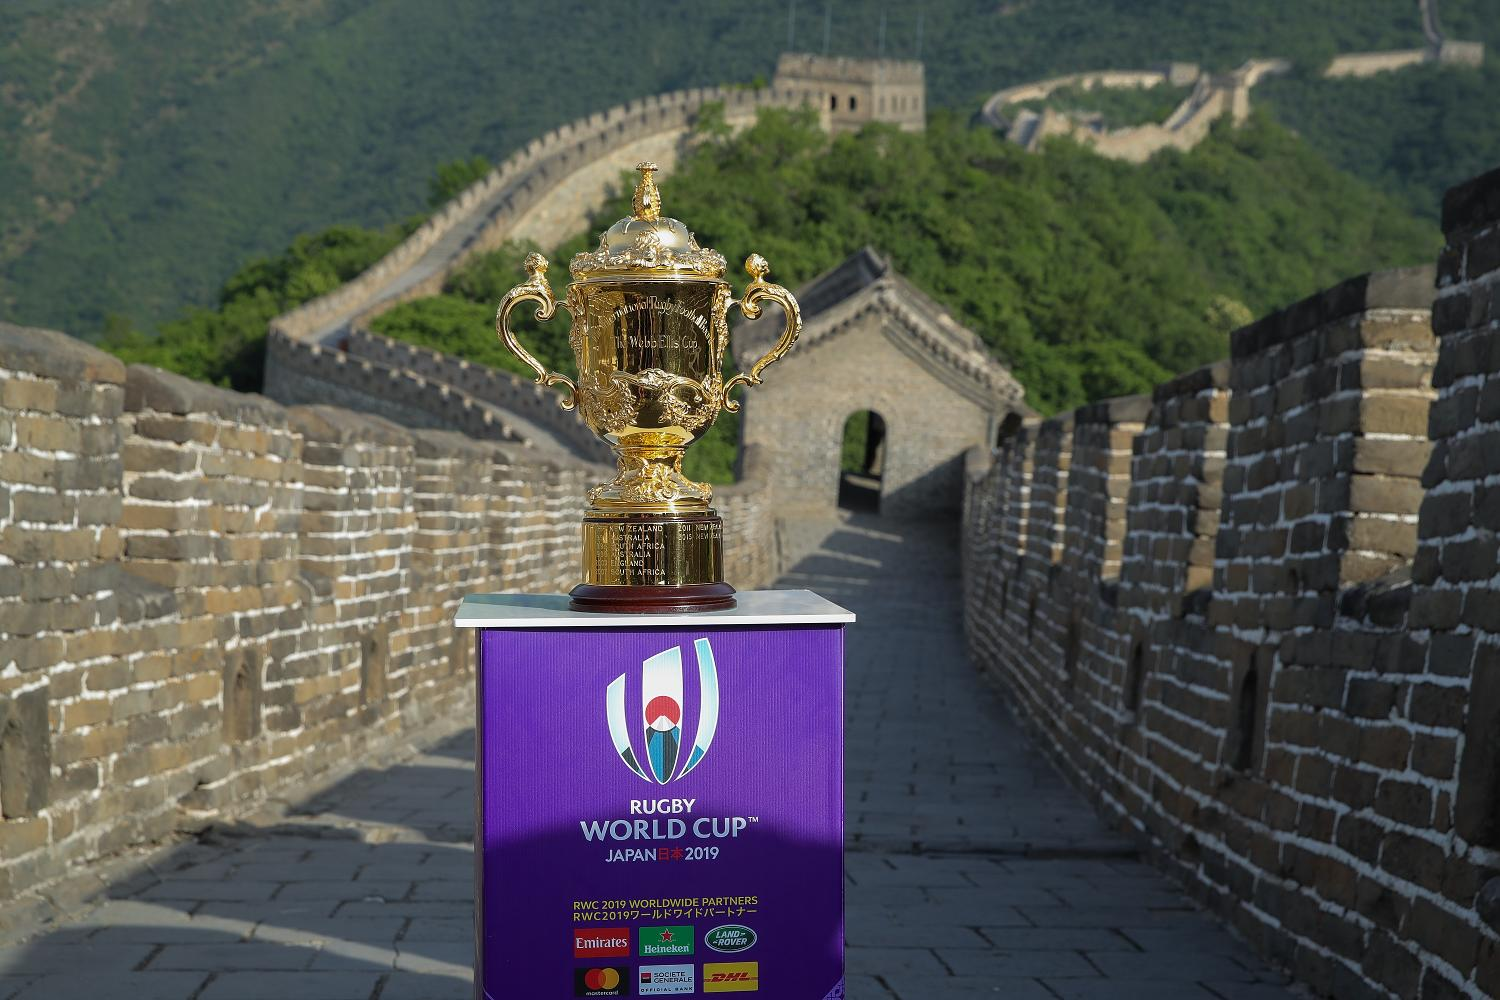 Rugby World Cup 2019 Trophy Tour - Beijing: Day Four